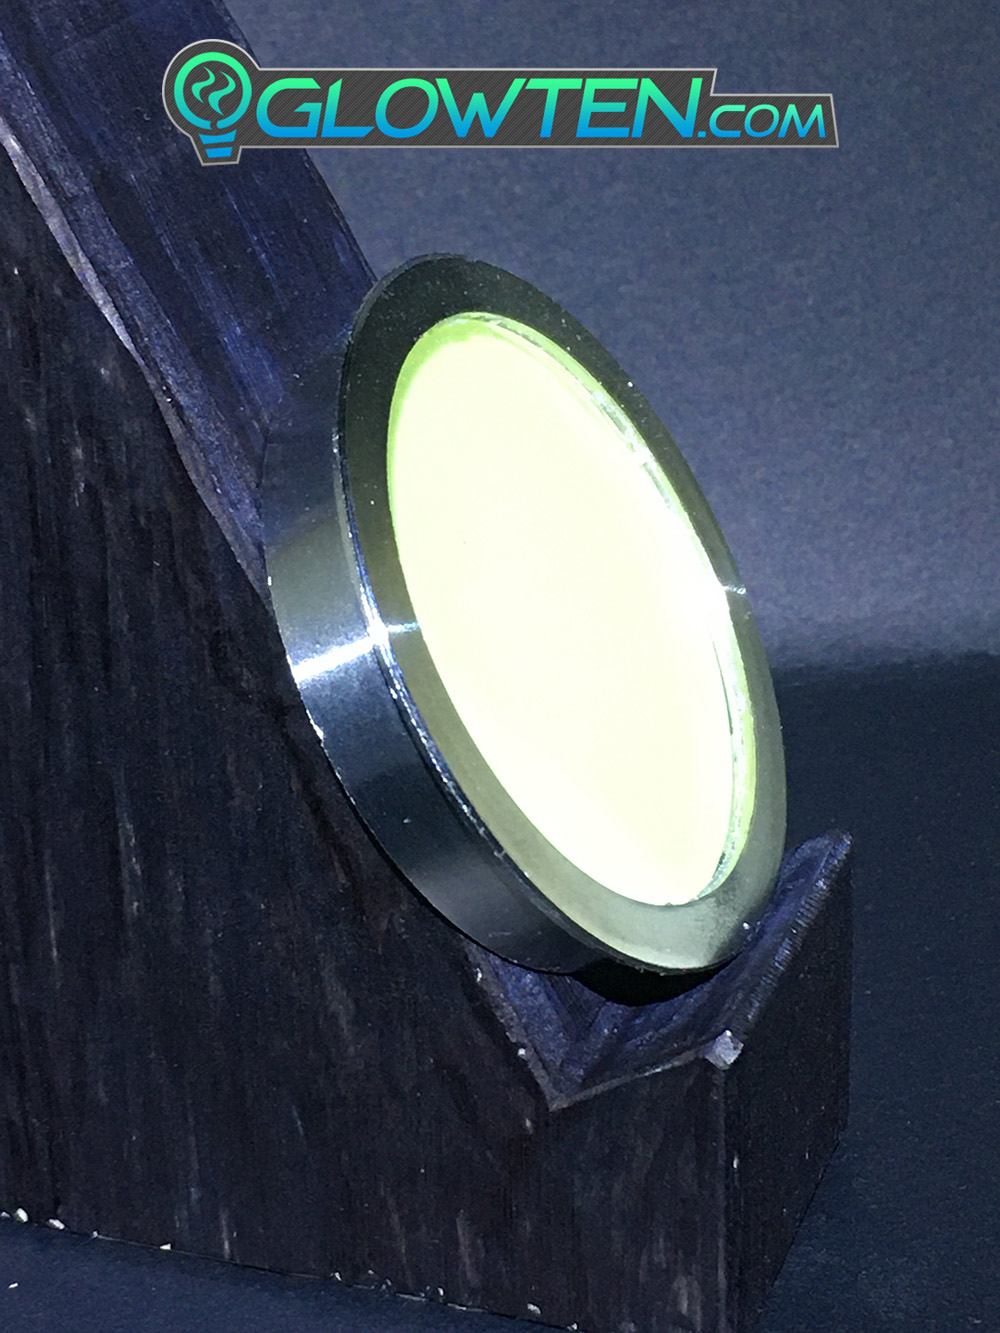 GLOWTEN.com - Emitting Long Lasting Glow Emitting Green Glow Lighting ROUND CIRCLE Glow in the Dark Safety Sign With Stainless Steel Toughened Glass Rim Dot Ground Guide Chip Marker Plaque picture photo cap preview pic image search 5